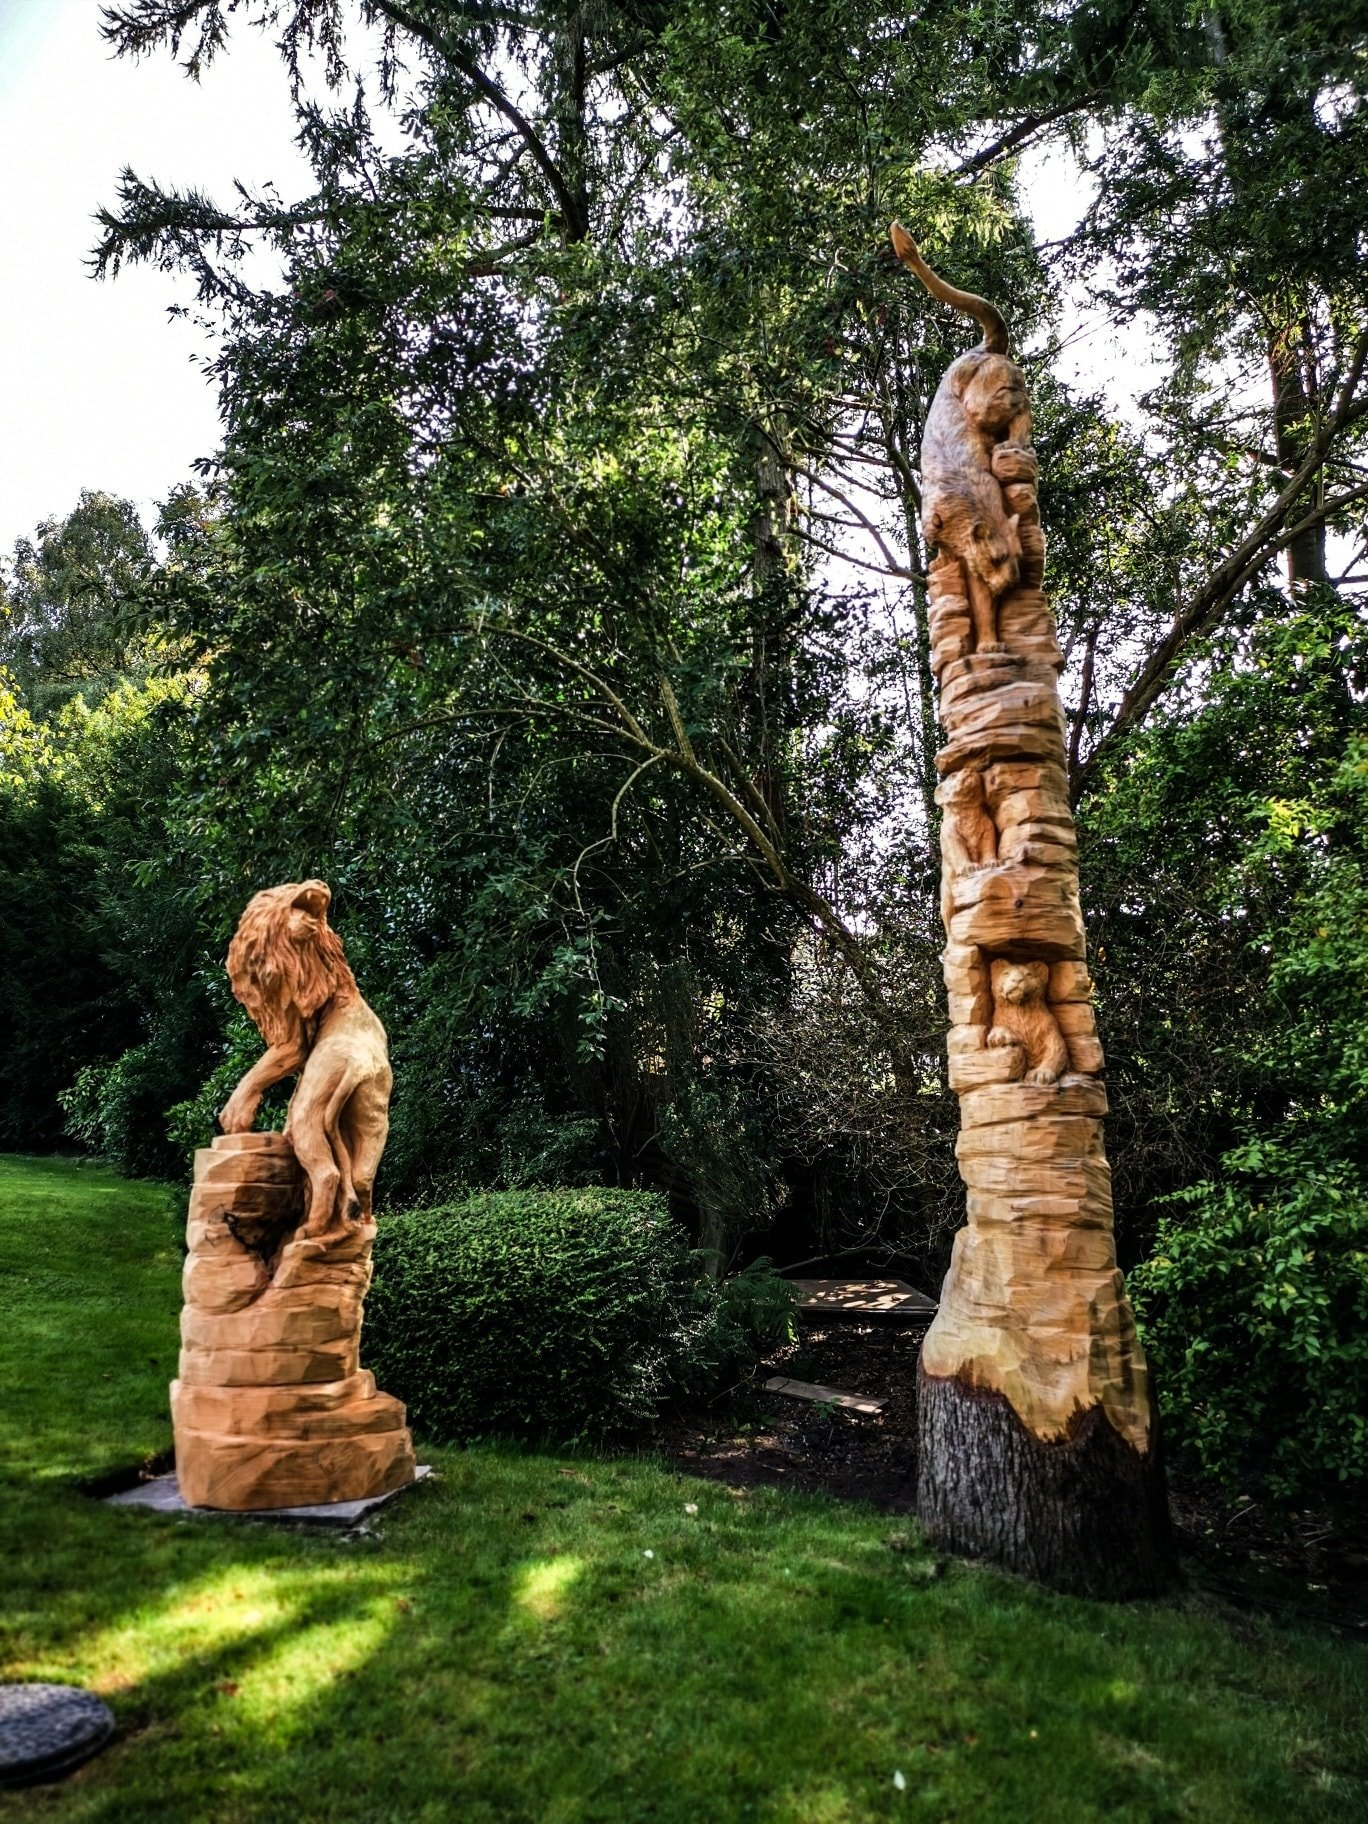 Tips for carving big cats by simon o'rourke. Photo shows a lion family Simon created from two separate tree trunks. One shows a male lion twisted to look in the direction of the second trunk which shows a lioness climbing down the trunk to reach a cub.